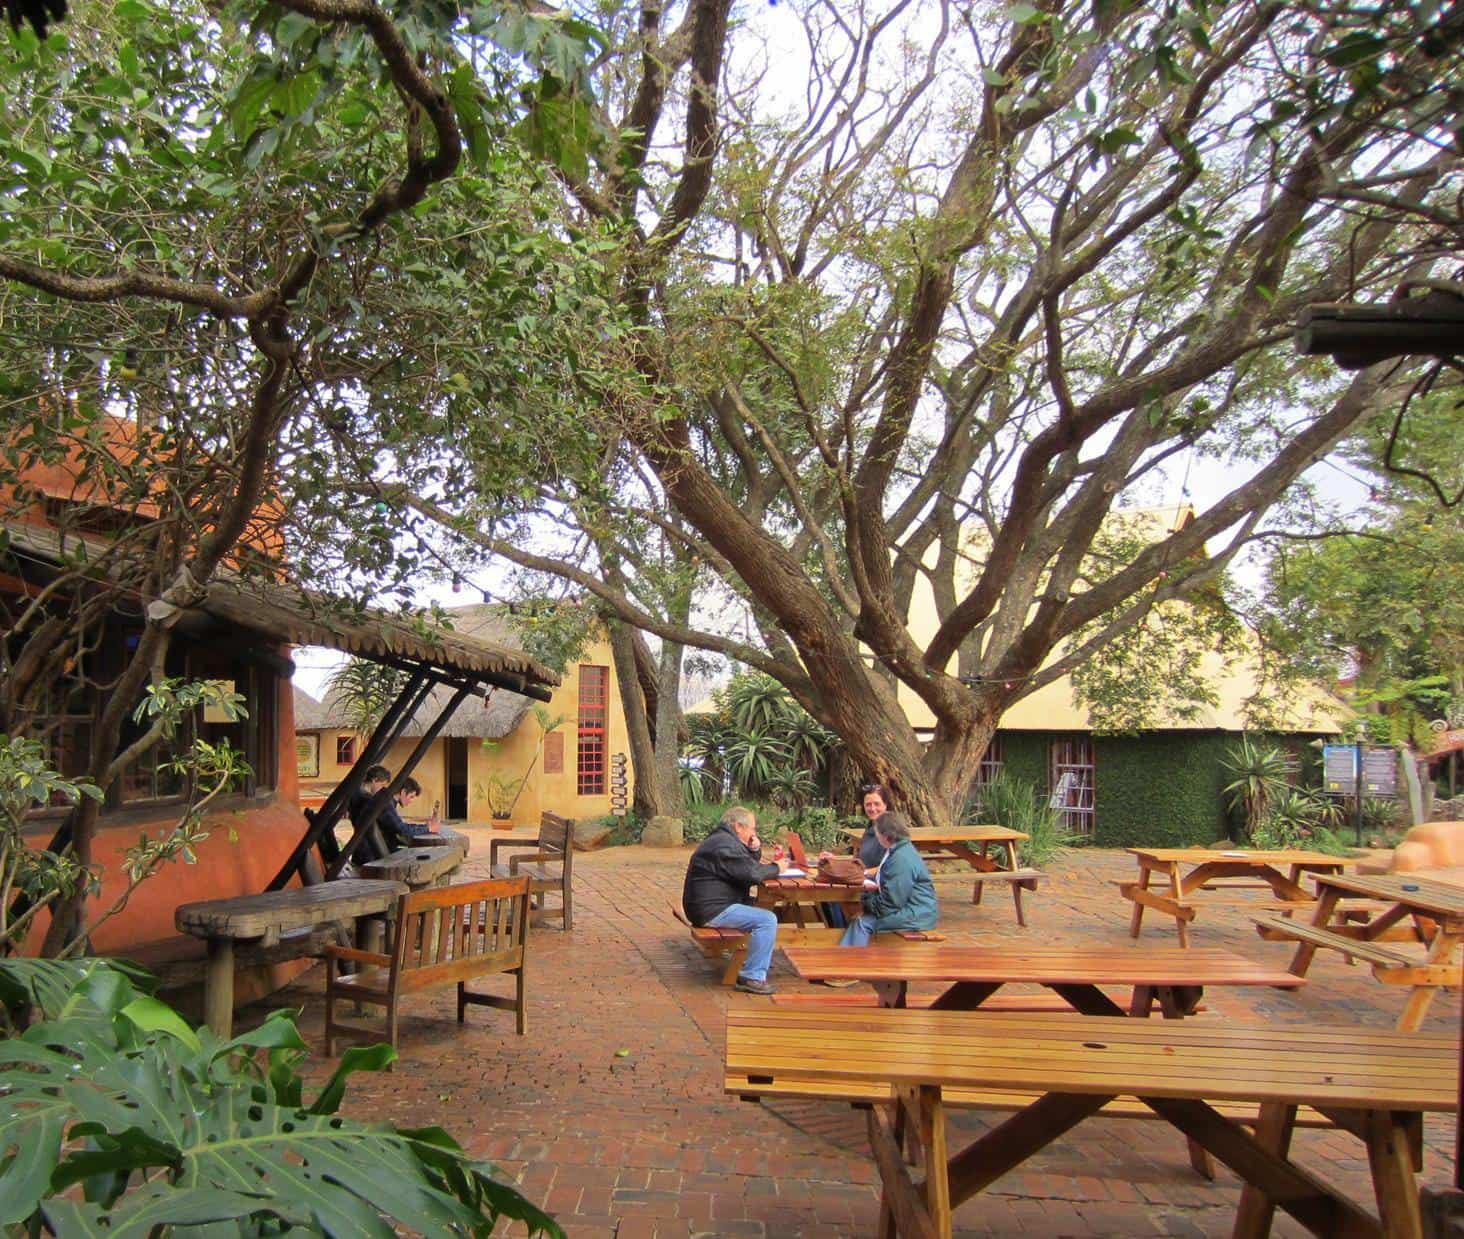 Seating under majestic trees at Malandelas restaurant.